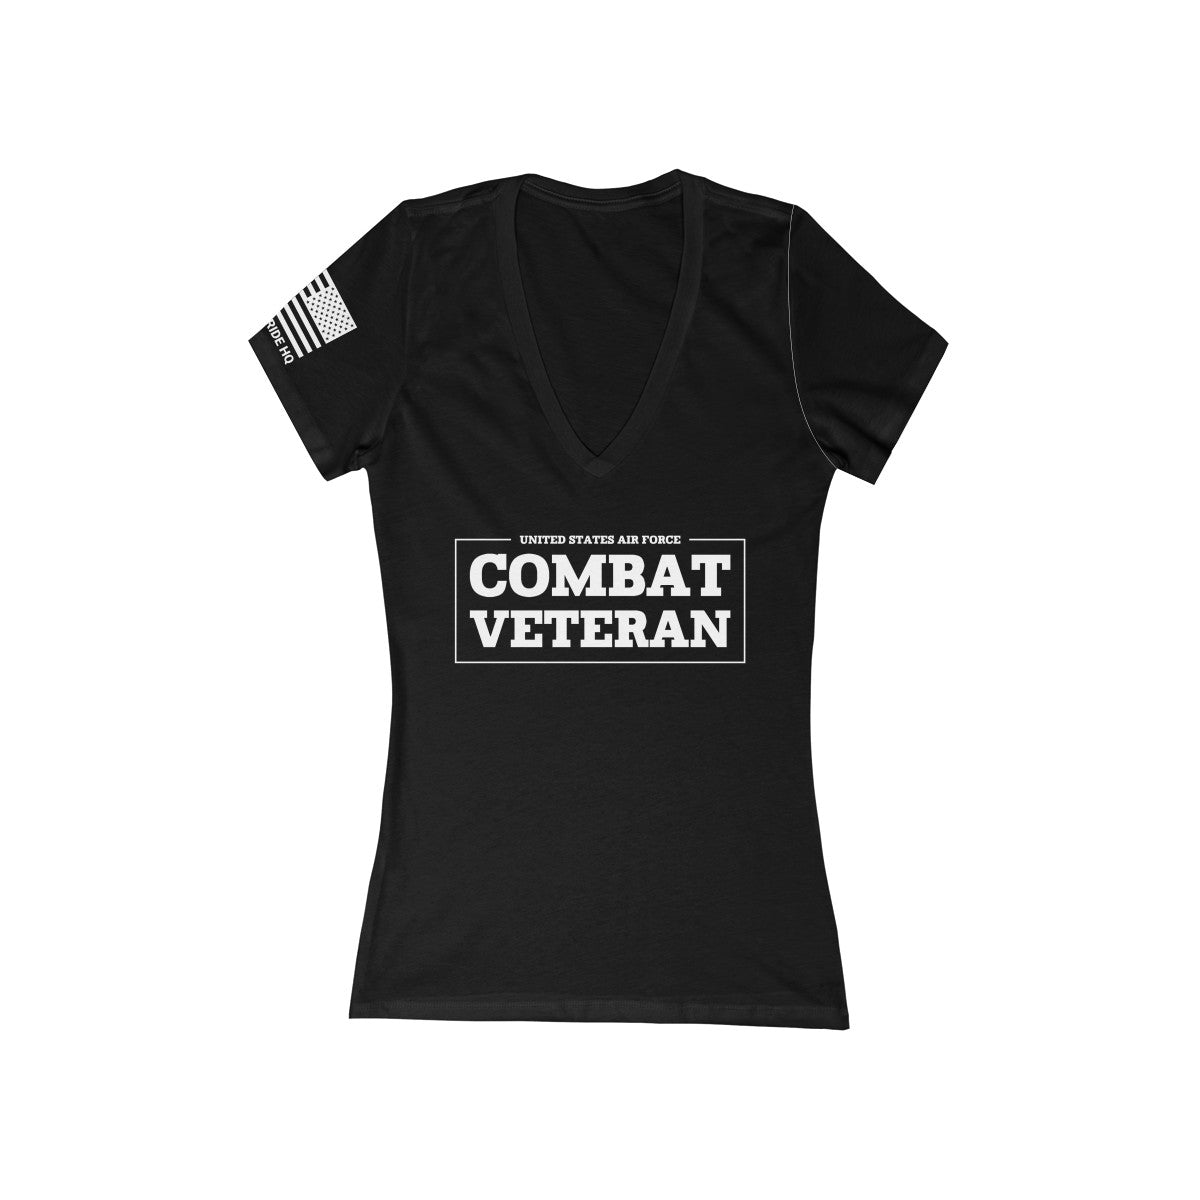 United States Air Force Combat Veteran Women's V-Neck Tee